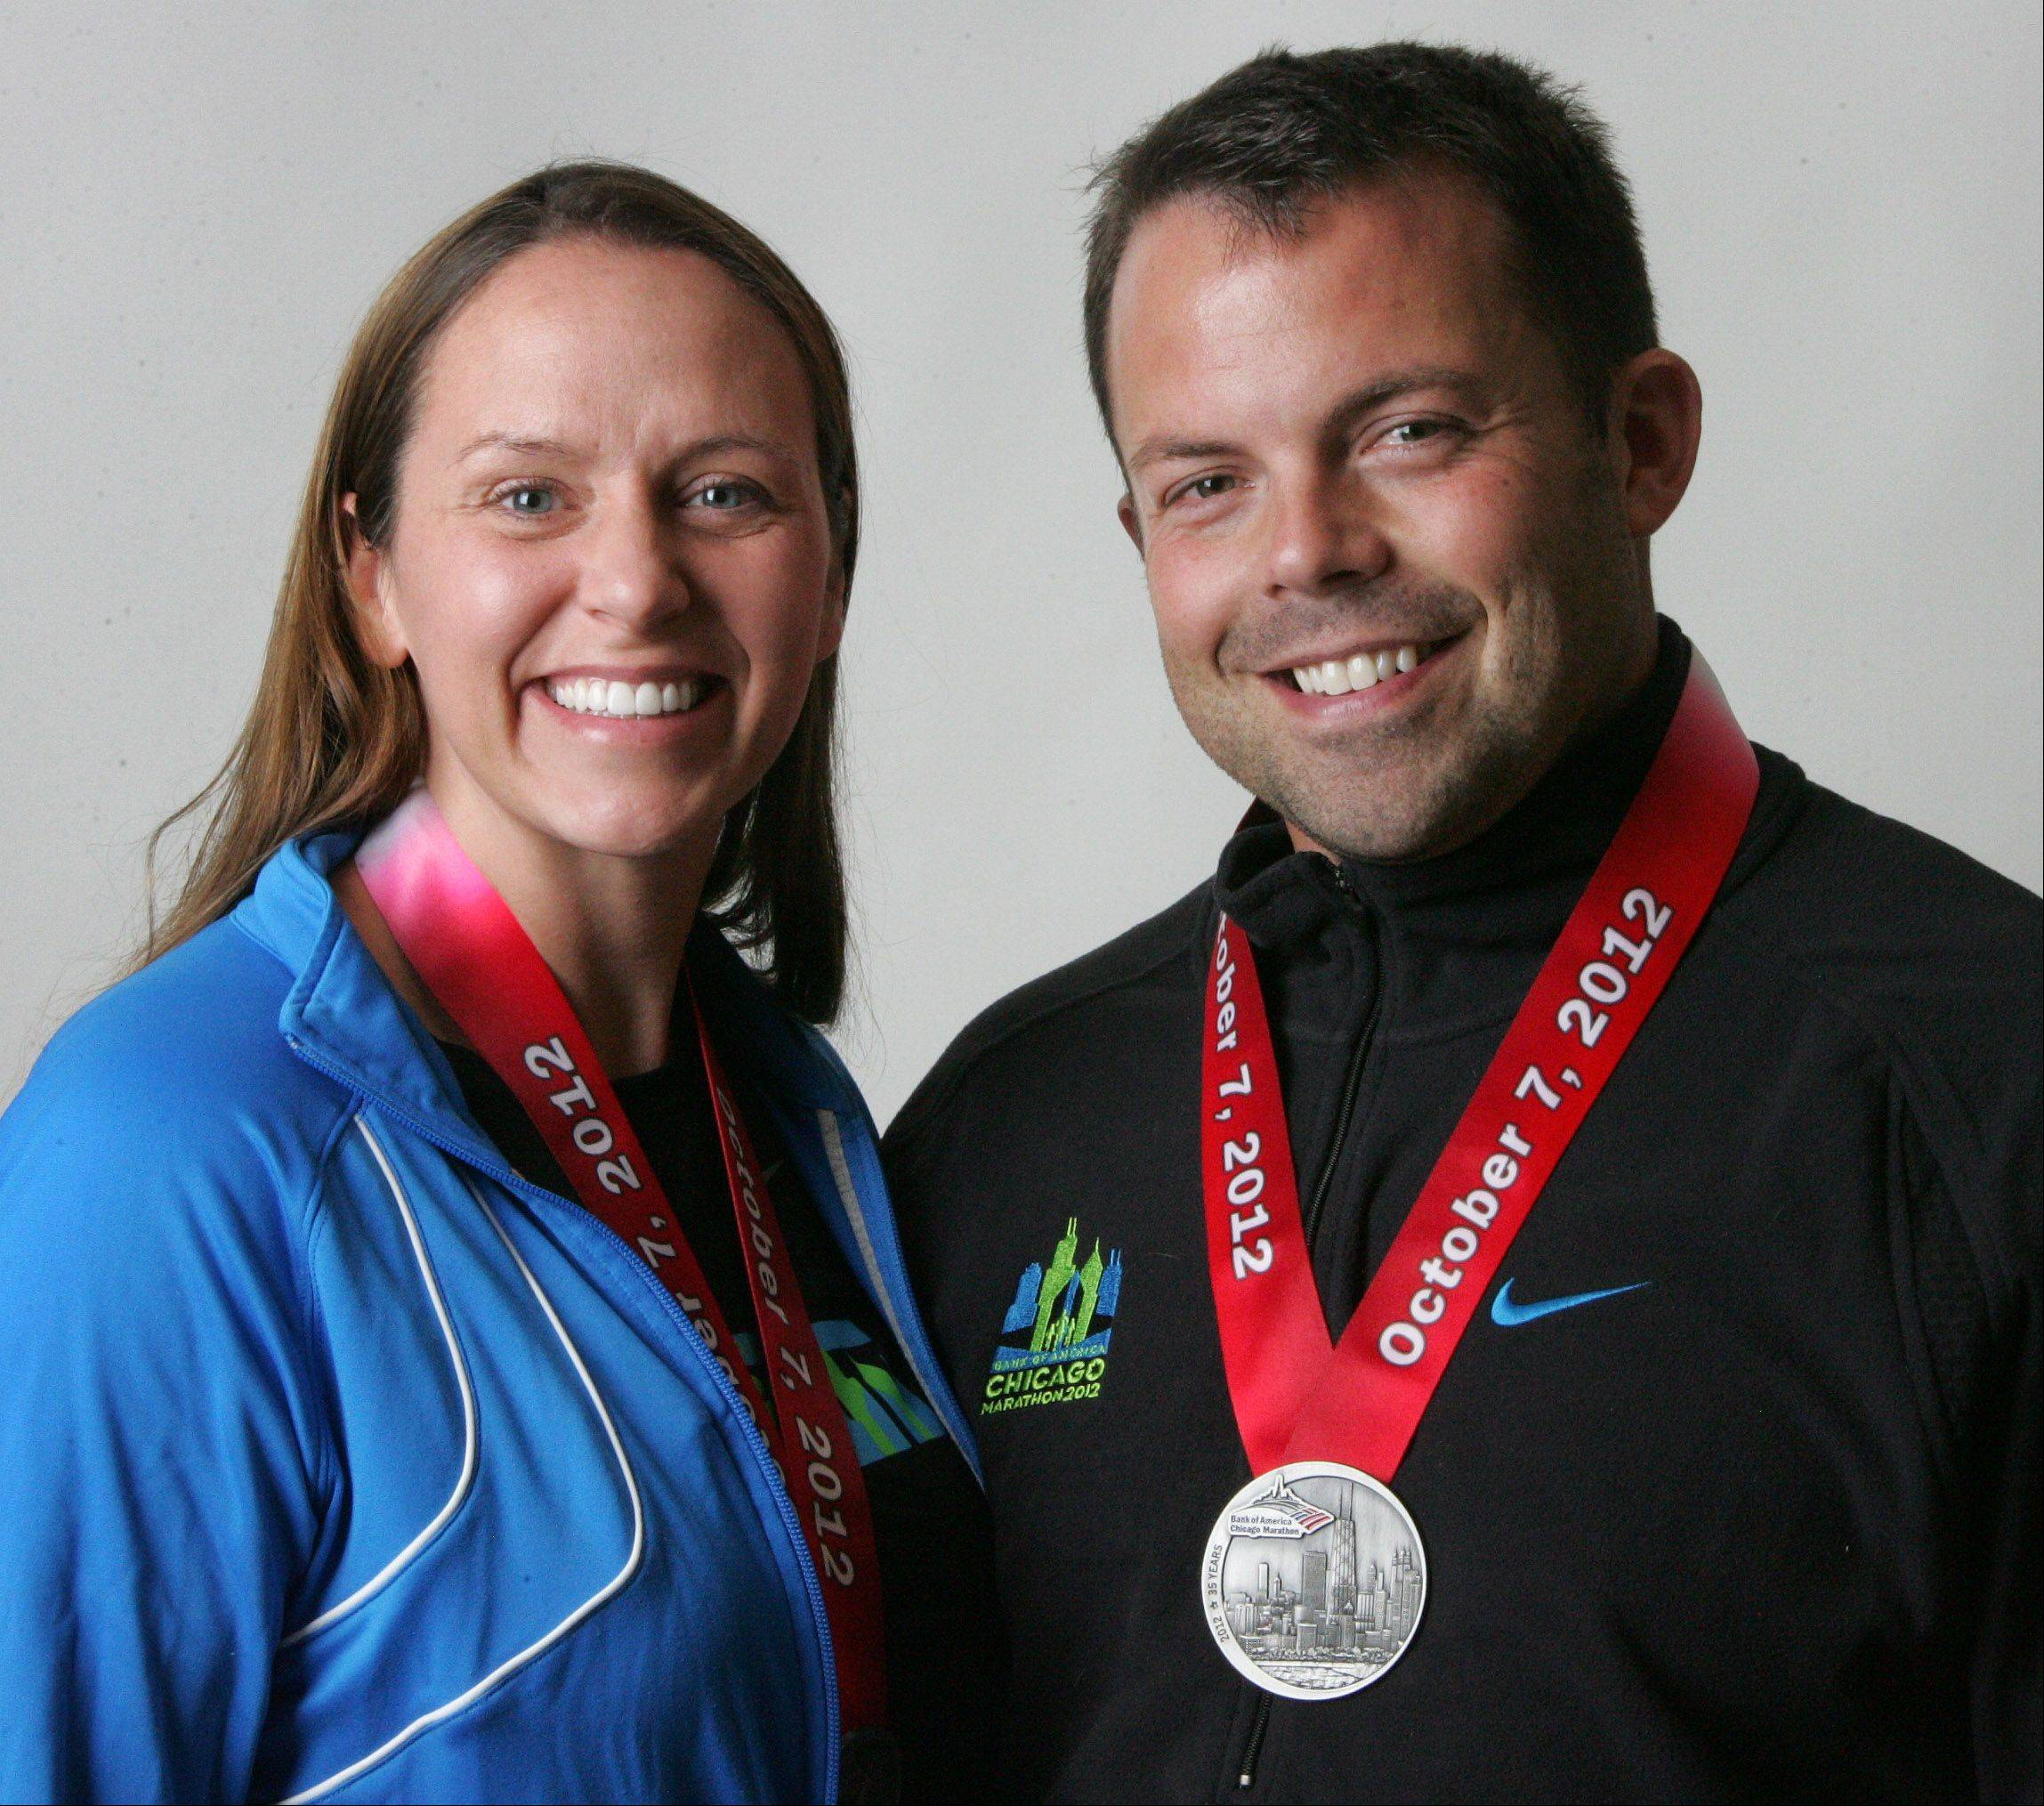 Kirk and Beth Disrude, of Mundelein, ran in the Chicago Marathon on Sunday.